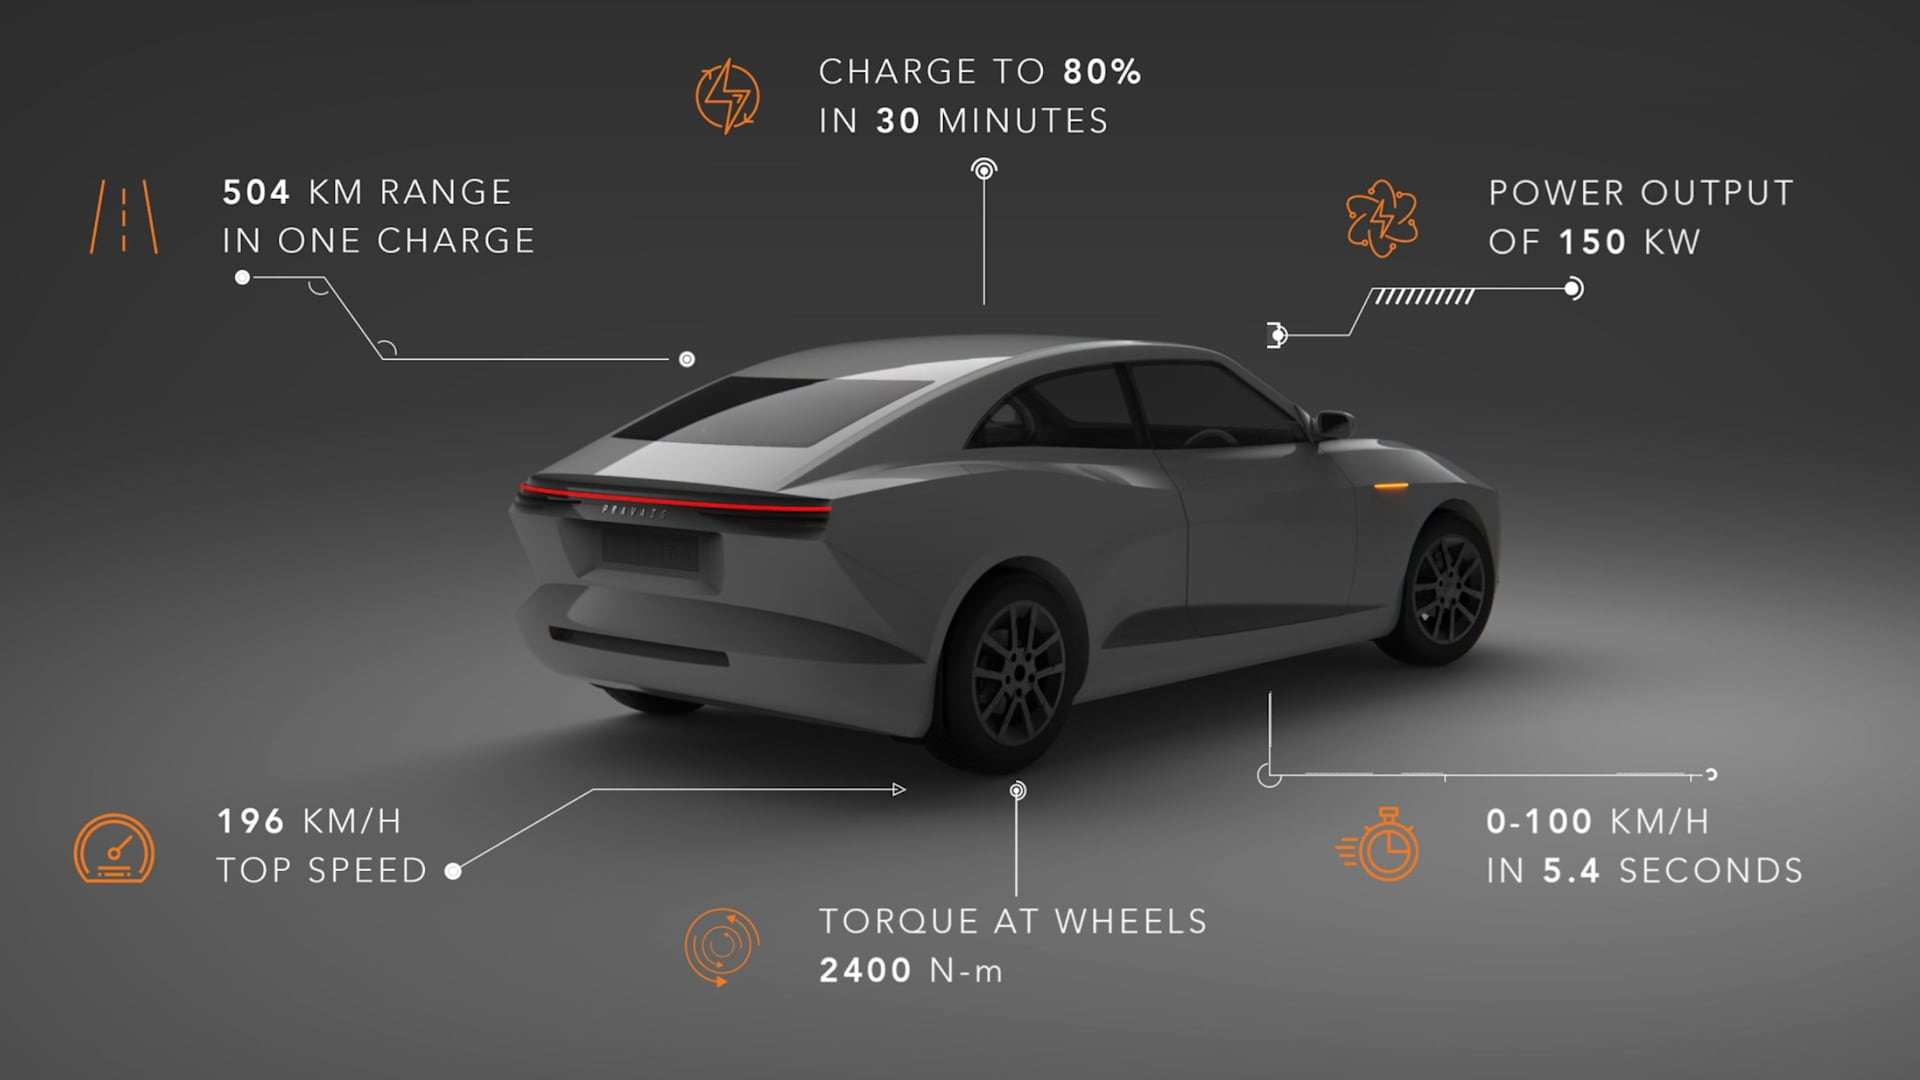 The Extinction MK1 offers more than 500 kms of range in single charge.